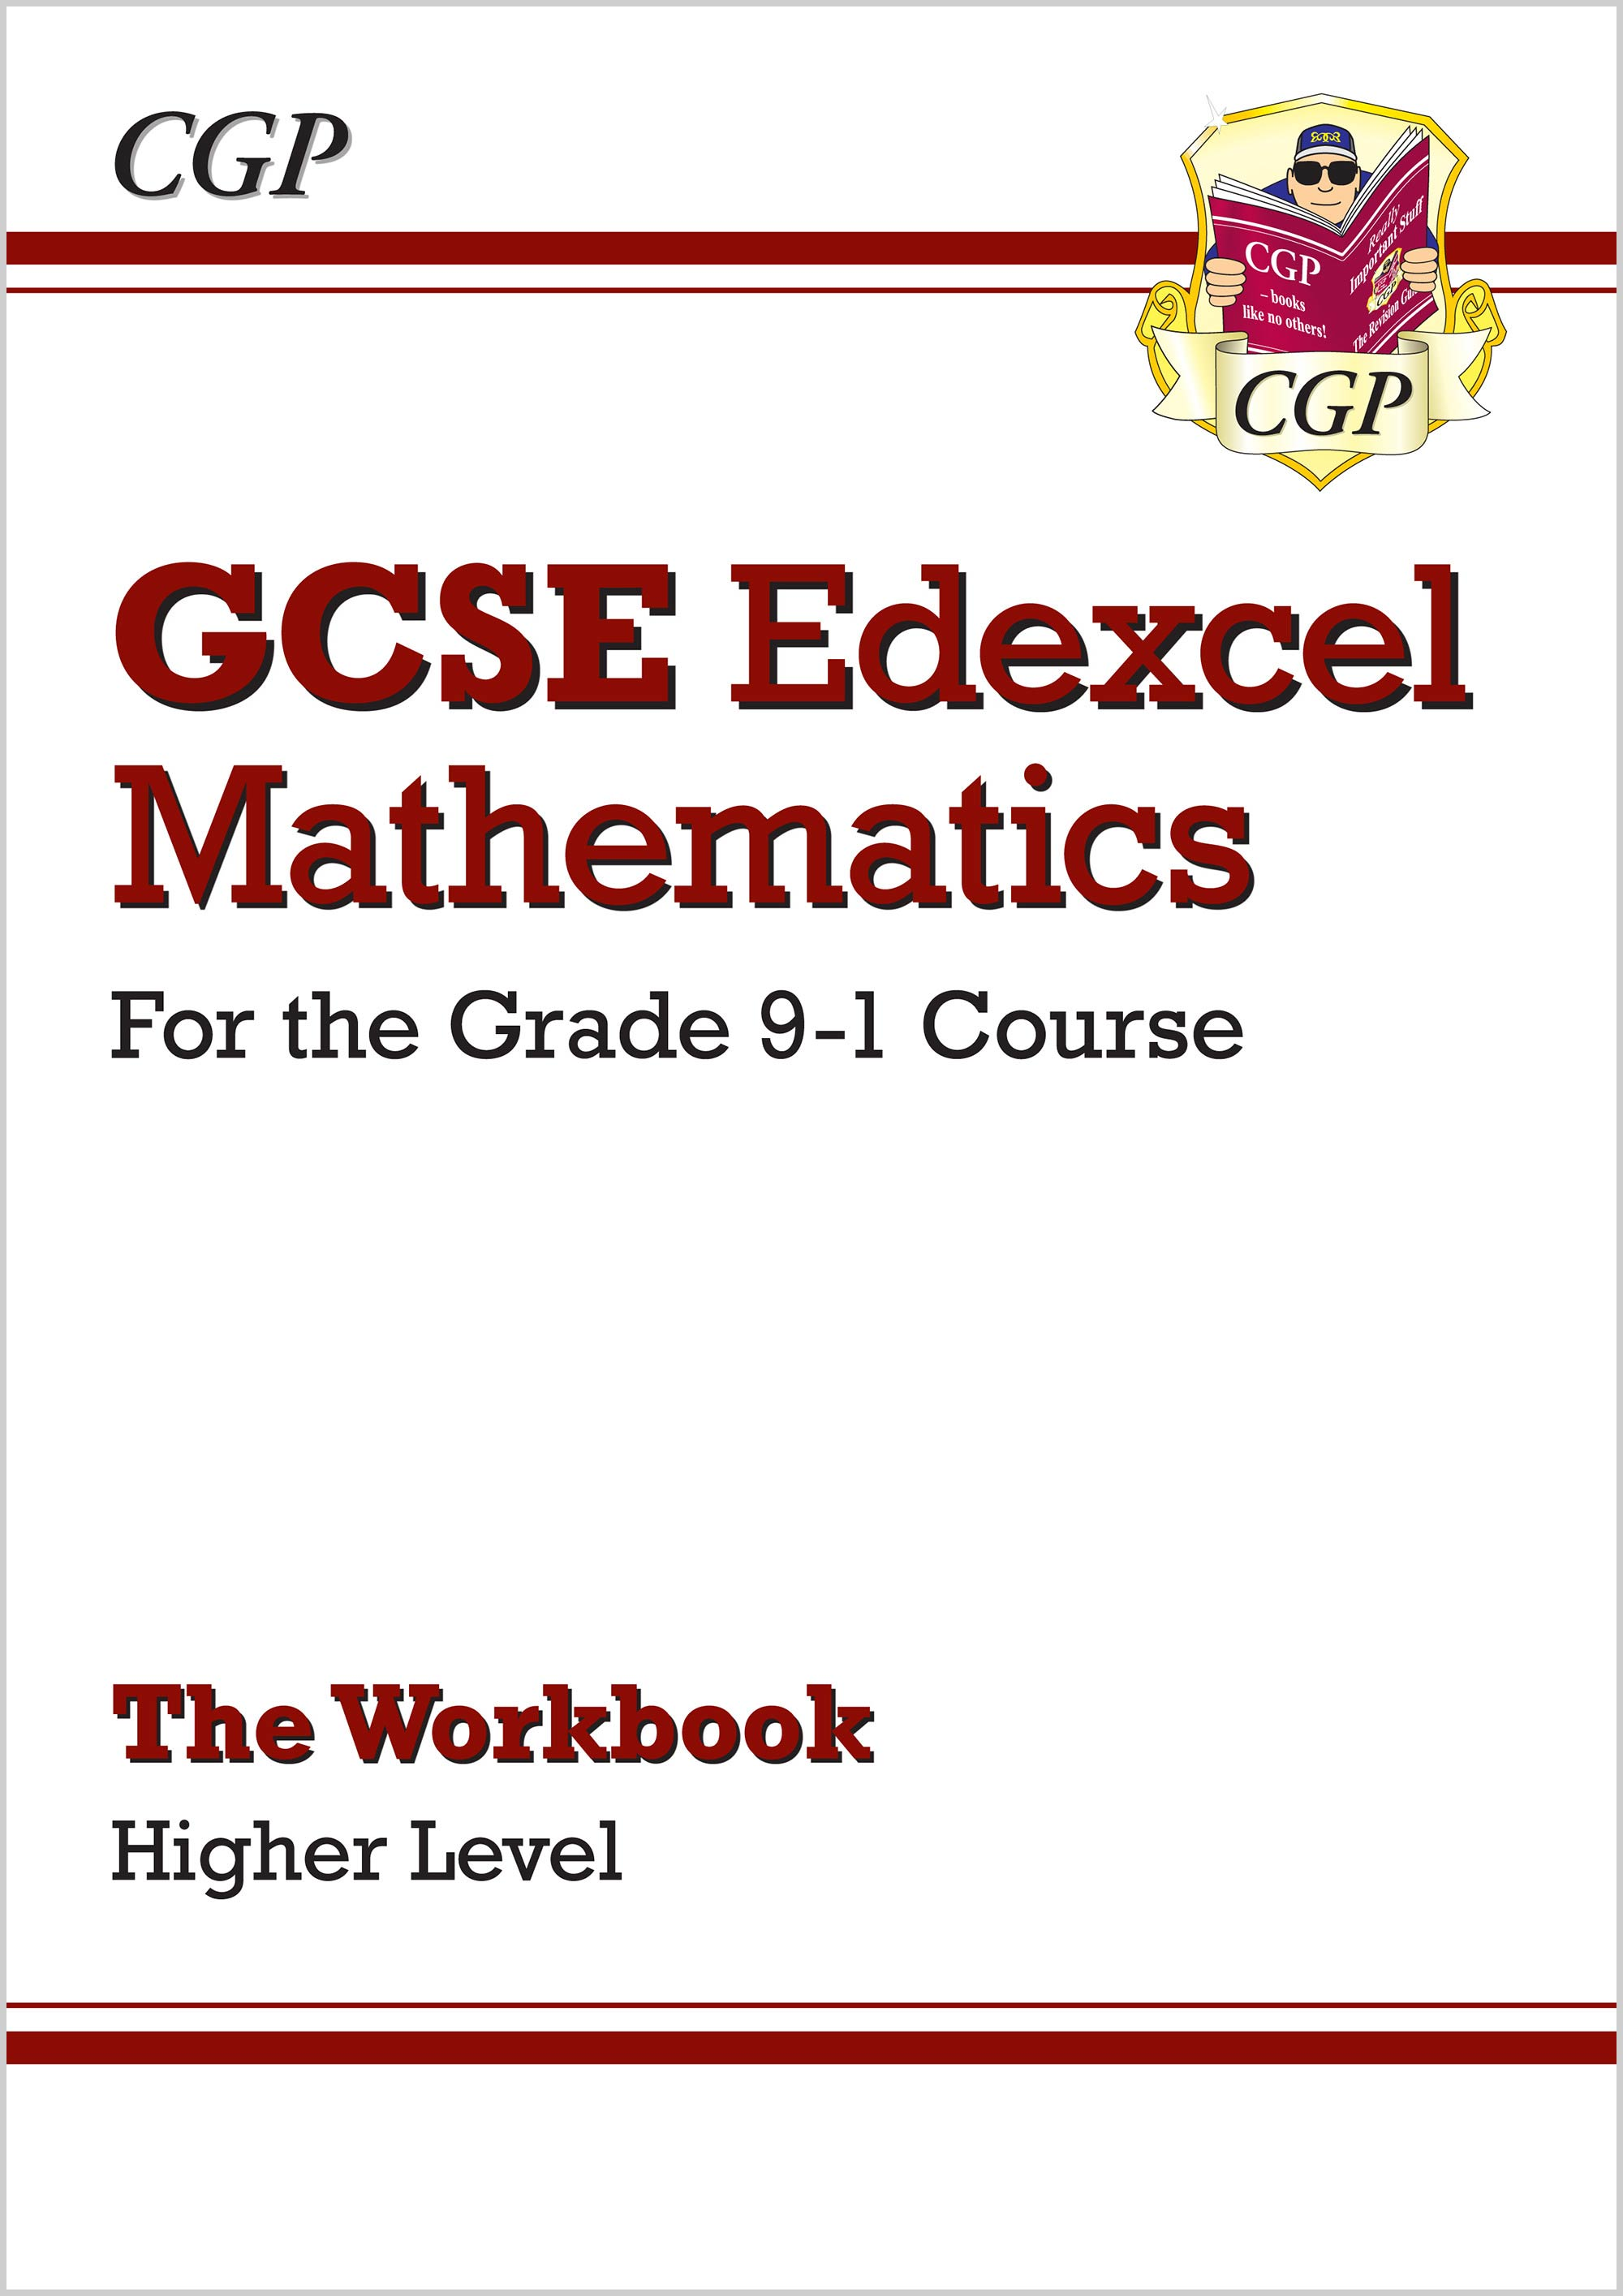 MXHW46 - GCSE Maths Edexcel Workbook: Higher - for the Grade 9-1 Course